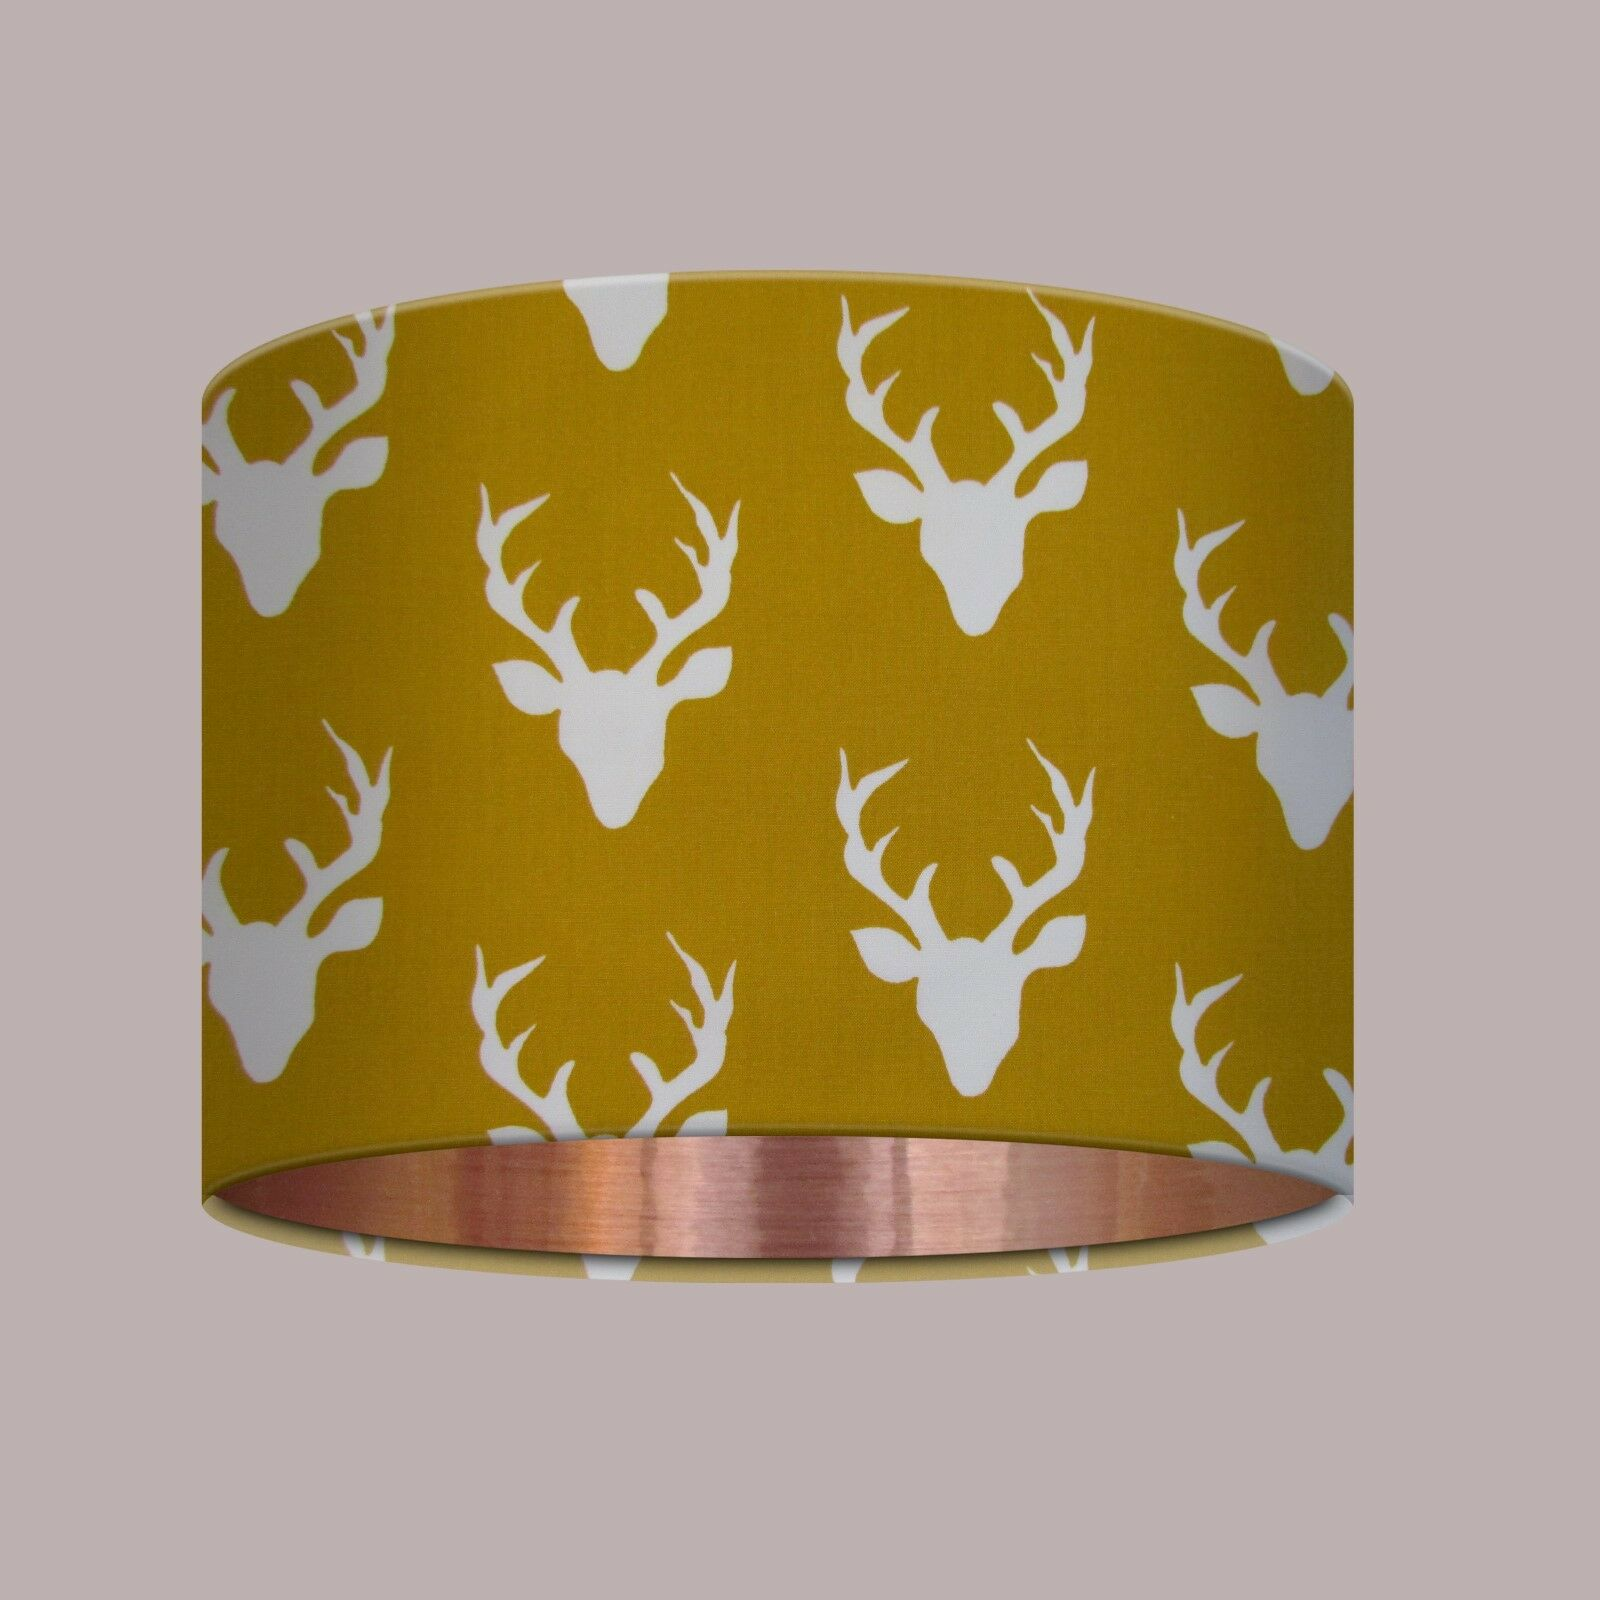 NEW Handmade Mustard Gelb Stag Head Brushed Copper Lined Drum Lampshade